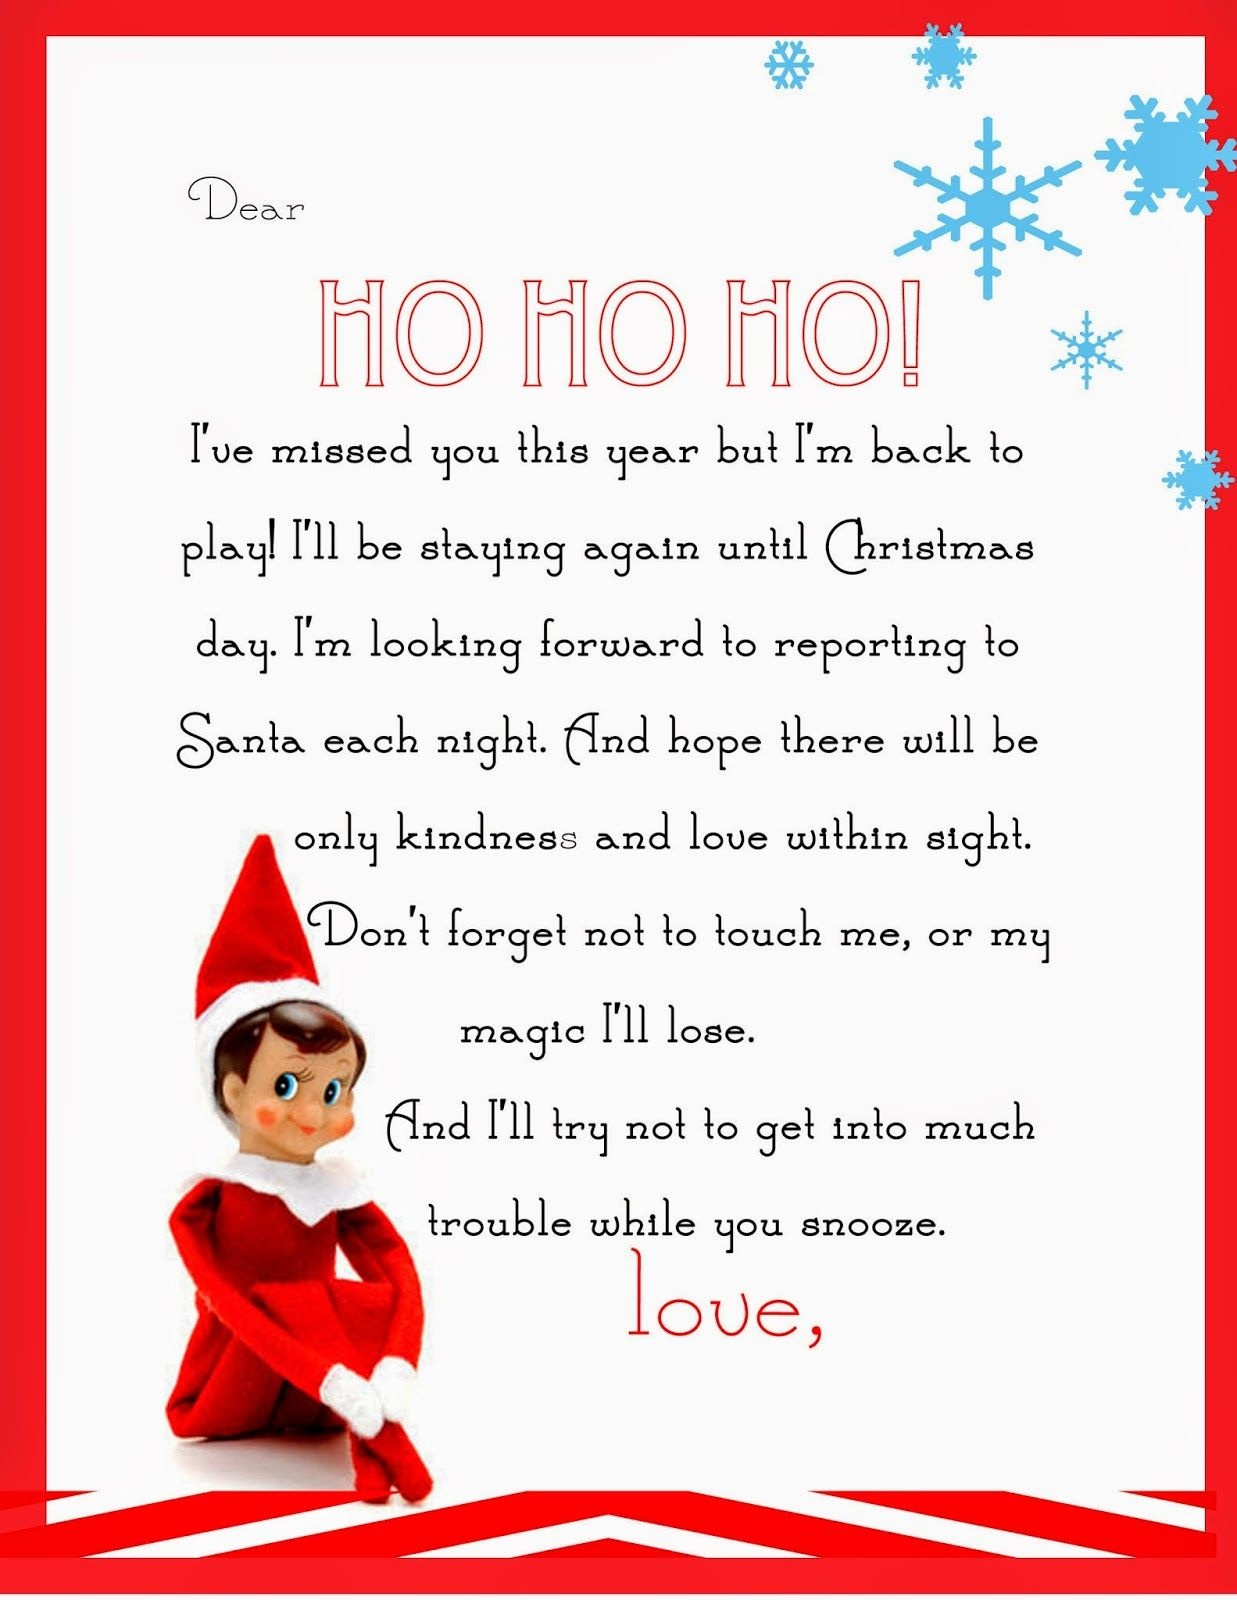 Elf On The Shelf Letter {Free Printable} | Christmas | Elf On The - Elf On The Shelf Goodbye Letter Free Printable